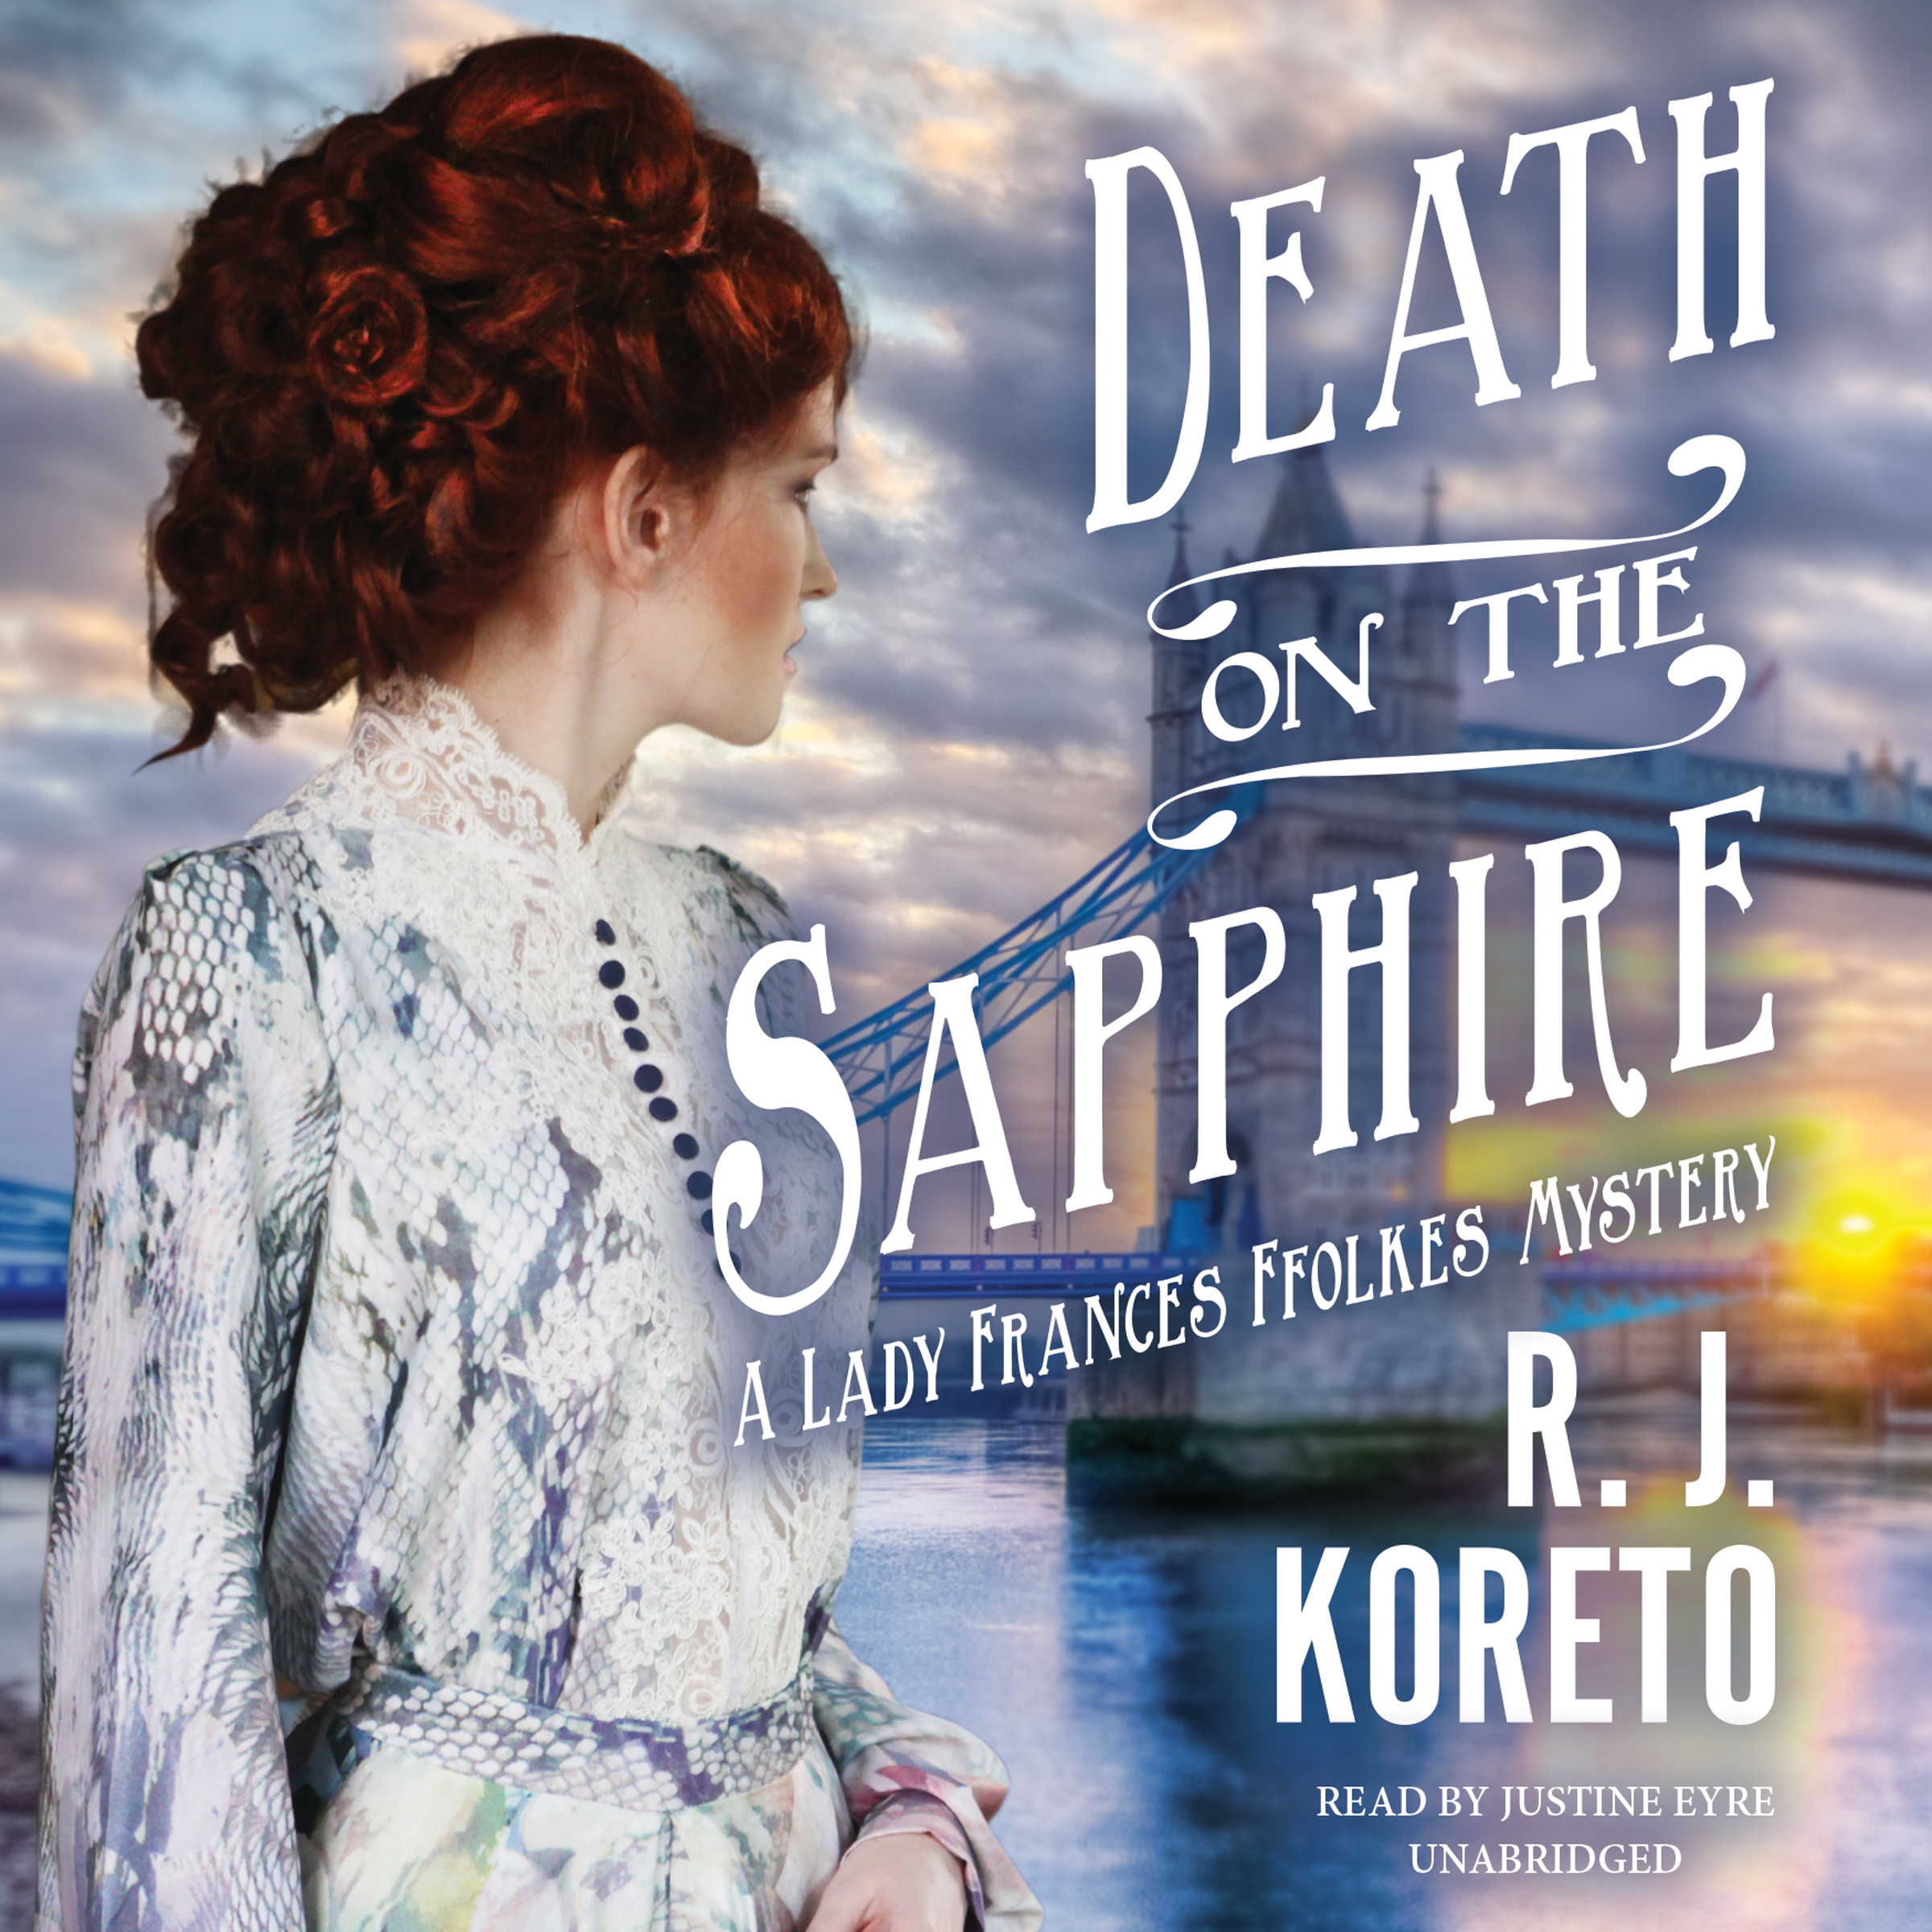 Printable Death on the Sapphire: A Lady Frances Ffolkes Mystery Audiobook Cover Art